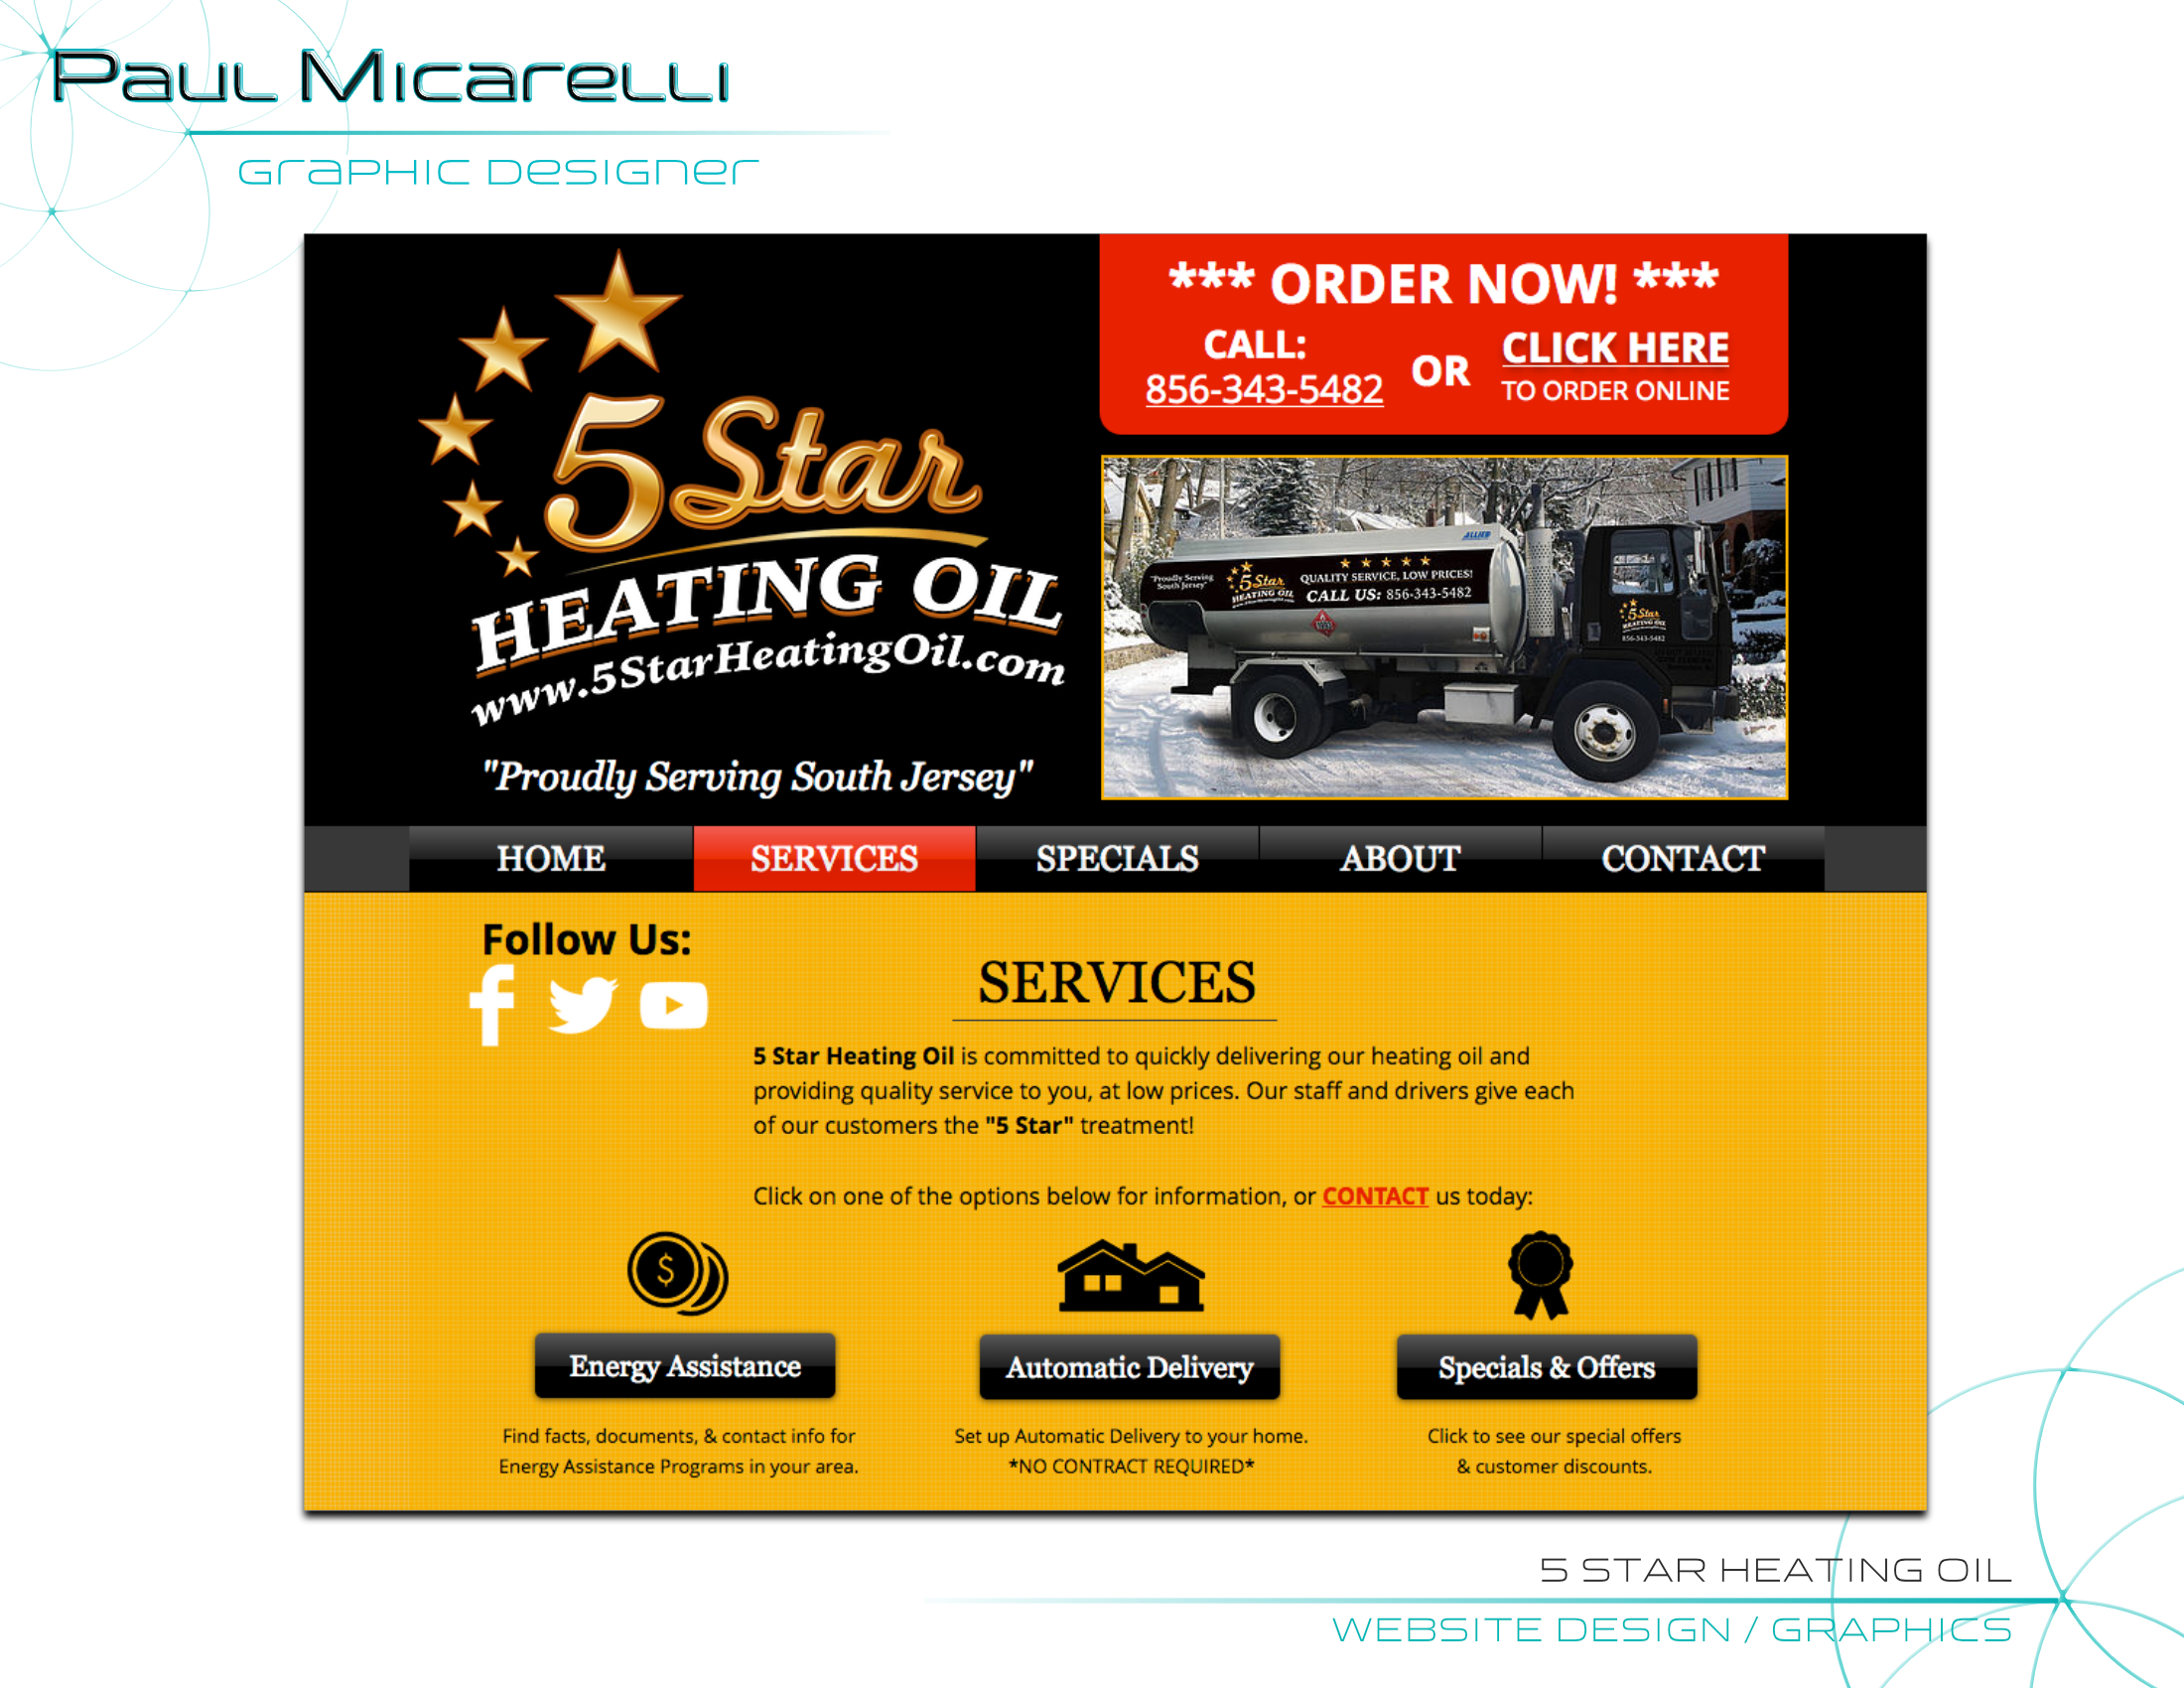 Paul-Micarelli-5 Star Heating Oil Websit